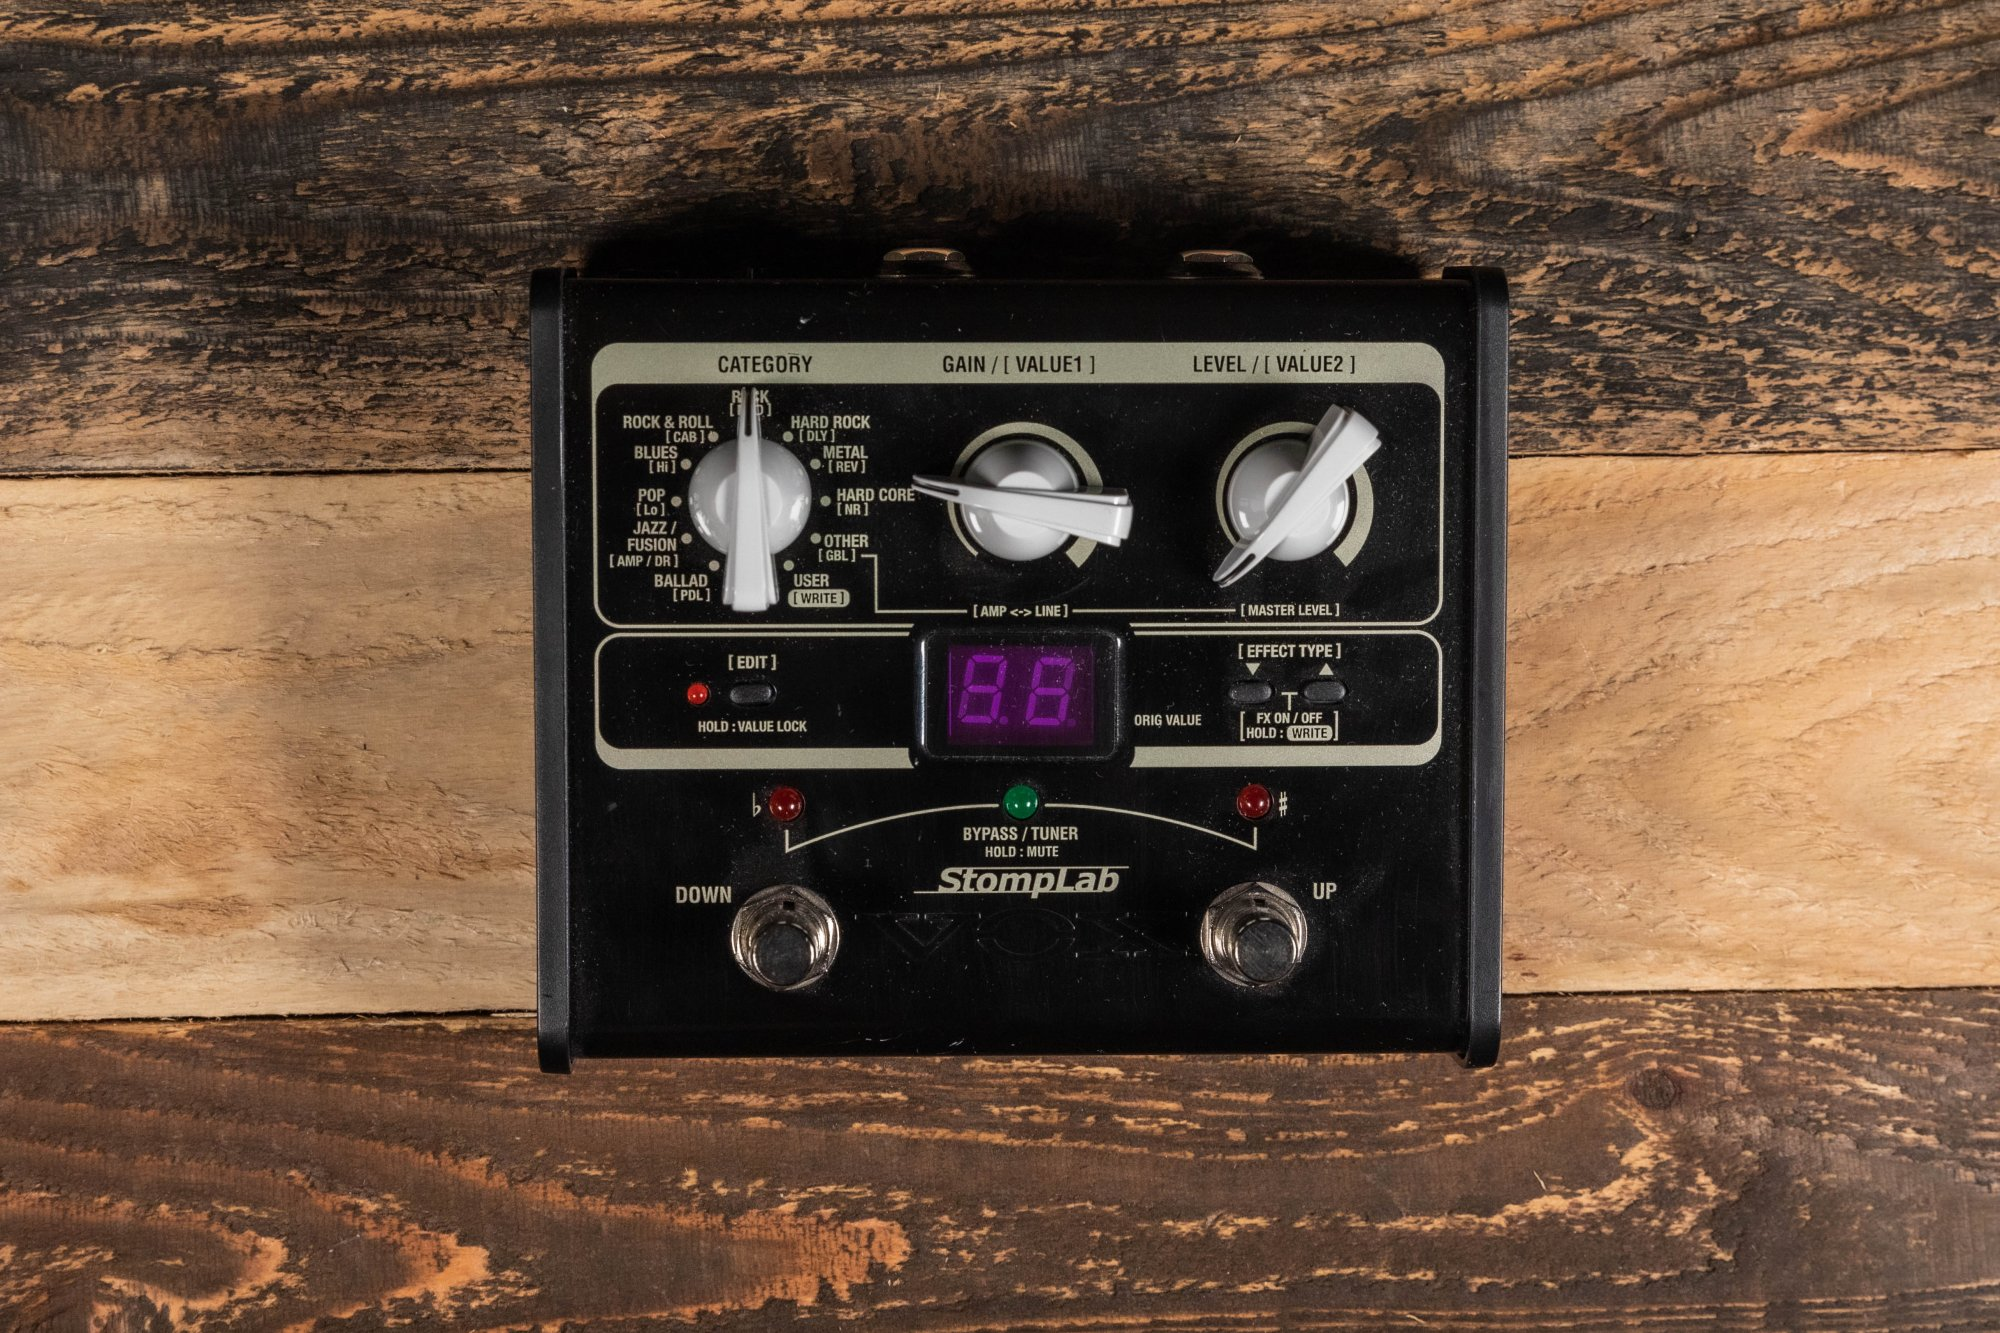 Vox StompPad Guitar Effects Pedal